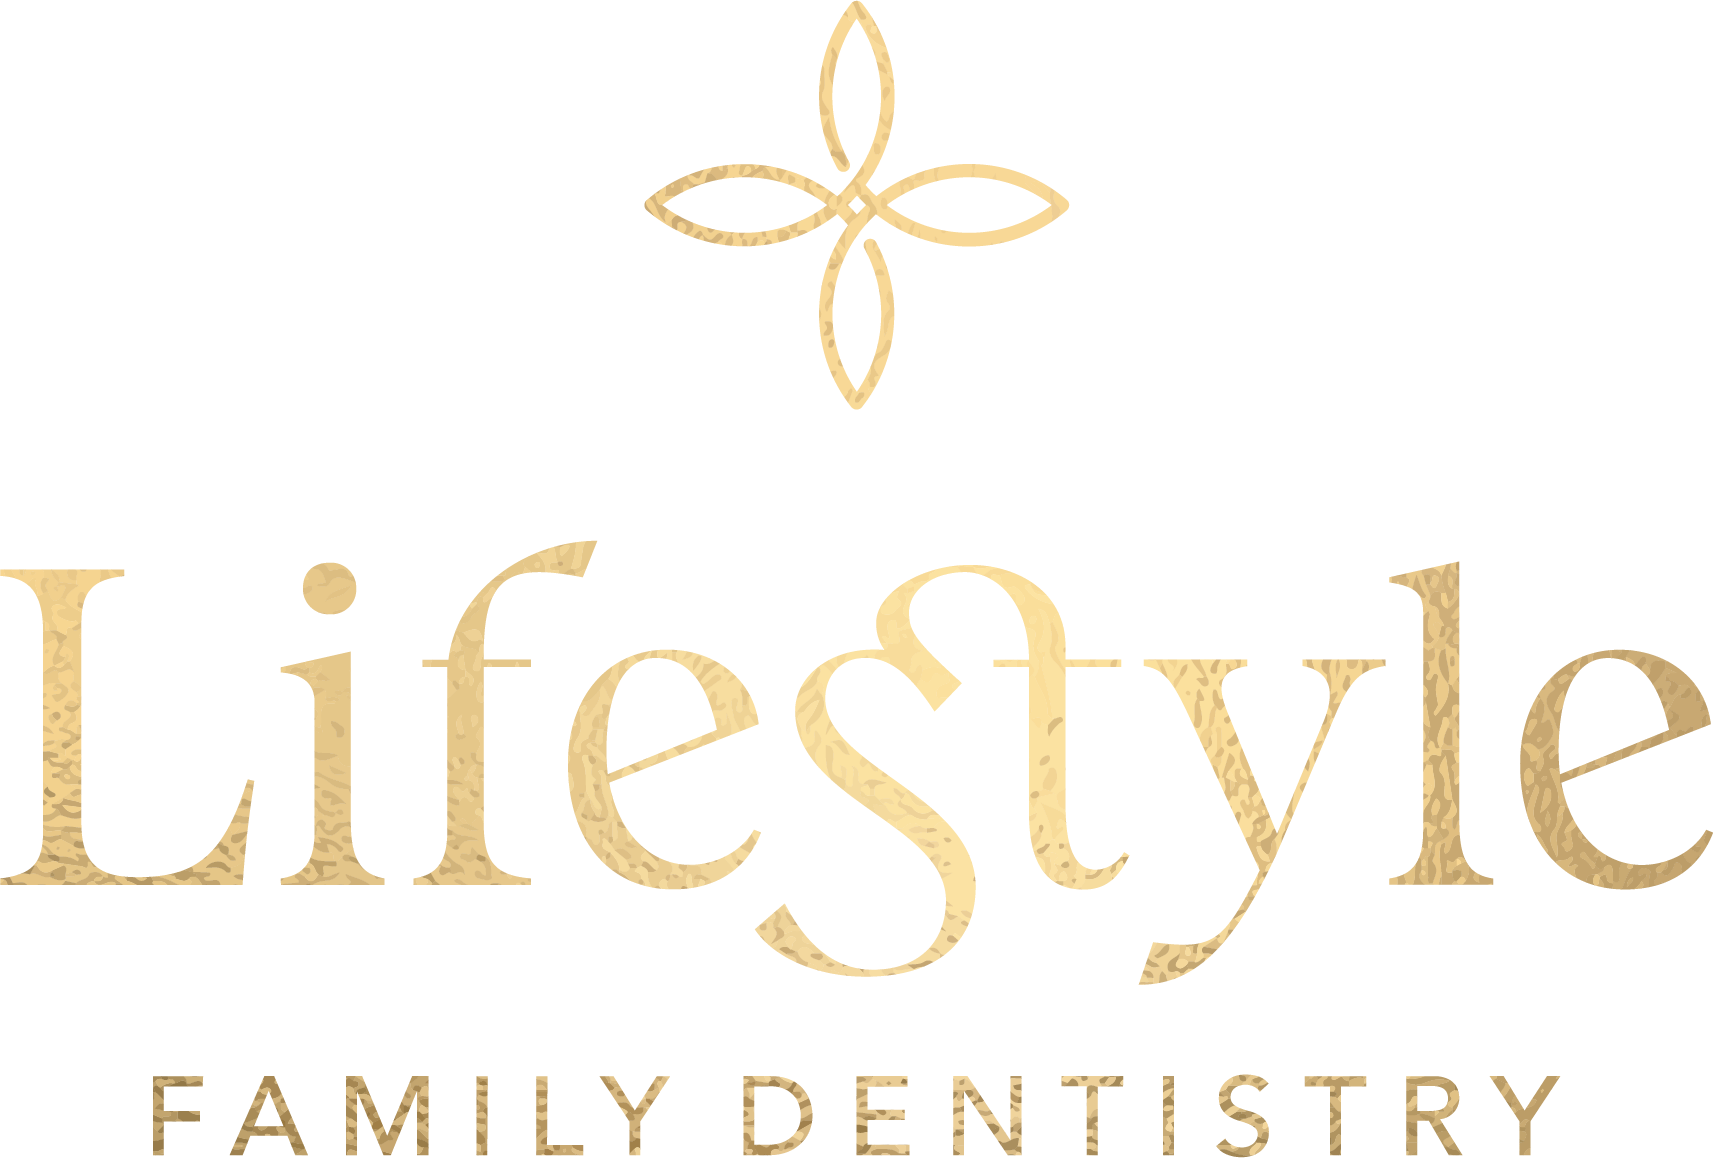 Lifestyle Family Dentistry